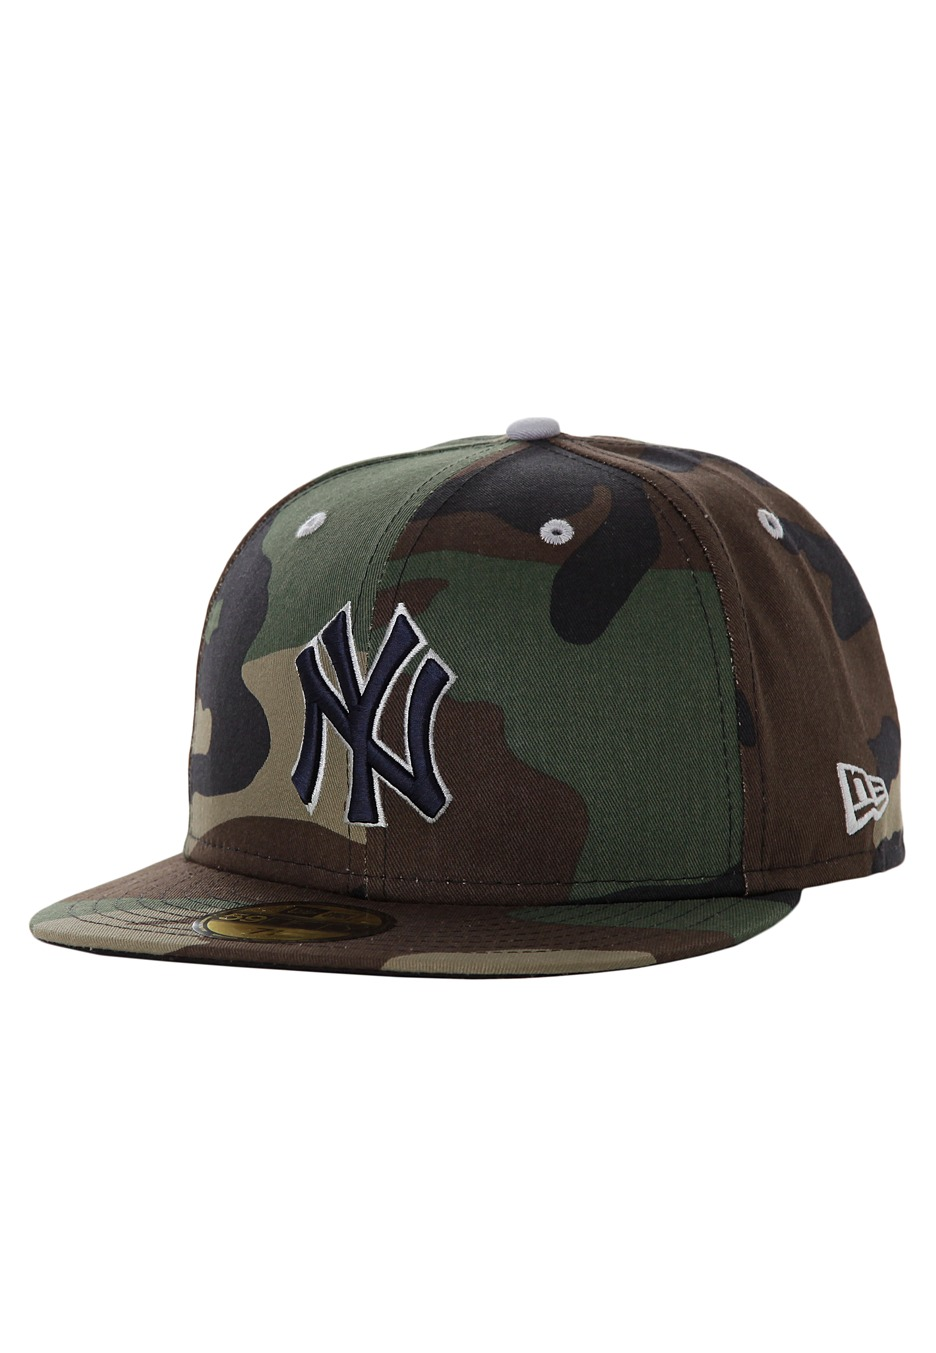 new era cap camouflage. Black Bedroom Furniture Sets. Home Design Ideas